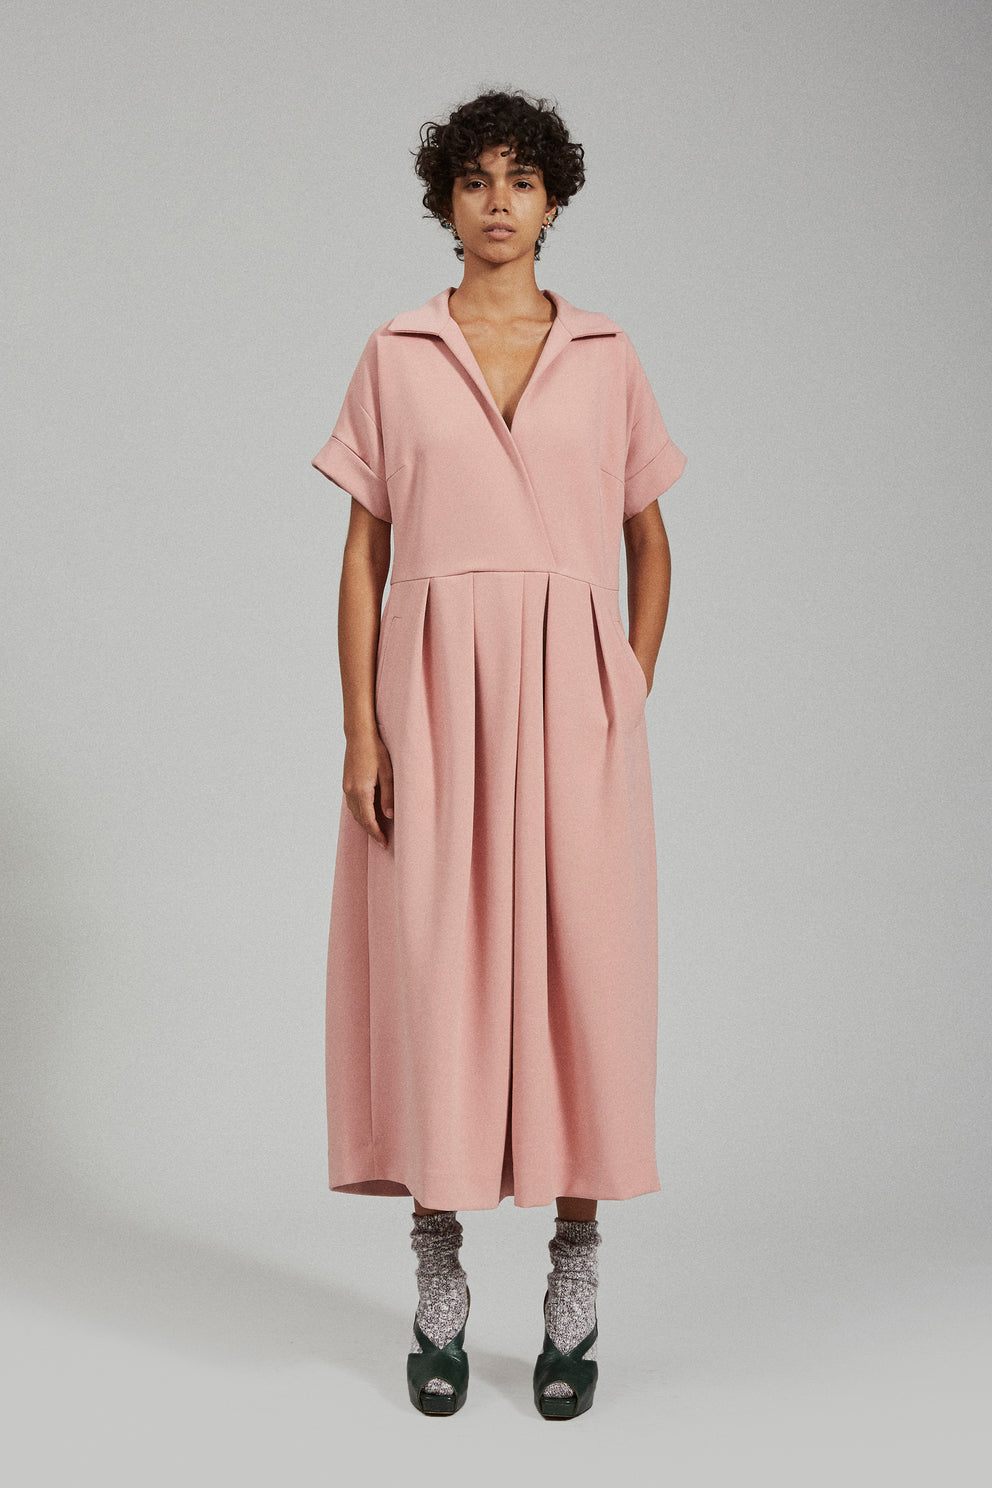 """Samya is 5'9.5"""" (176 cm) and wears a size 4 A sister to the Ardent Jumpsuit, the Tempo Dress is a waisted pleat front dress with midi length. It has a slightly loose, off the body fit which allows the pleats to move and for the whole style to drape around the neckline. Innsbruck is one of our favorite suiting fabrics; it holds structure while having enough stretch to provide flexibility and comfort."""